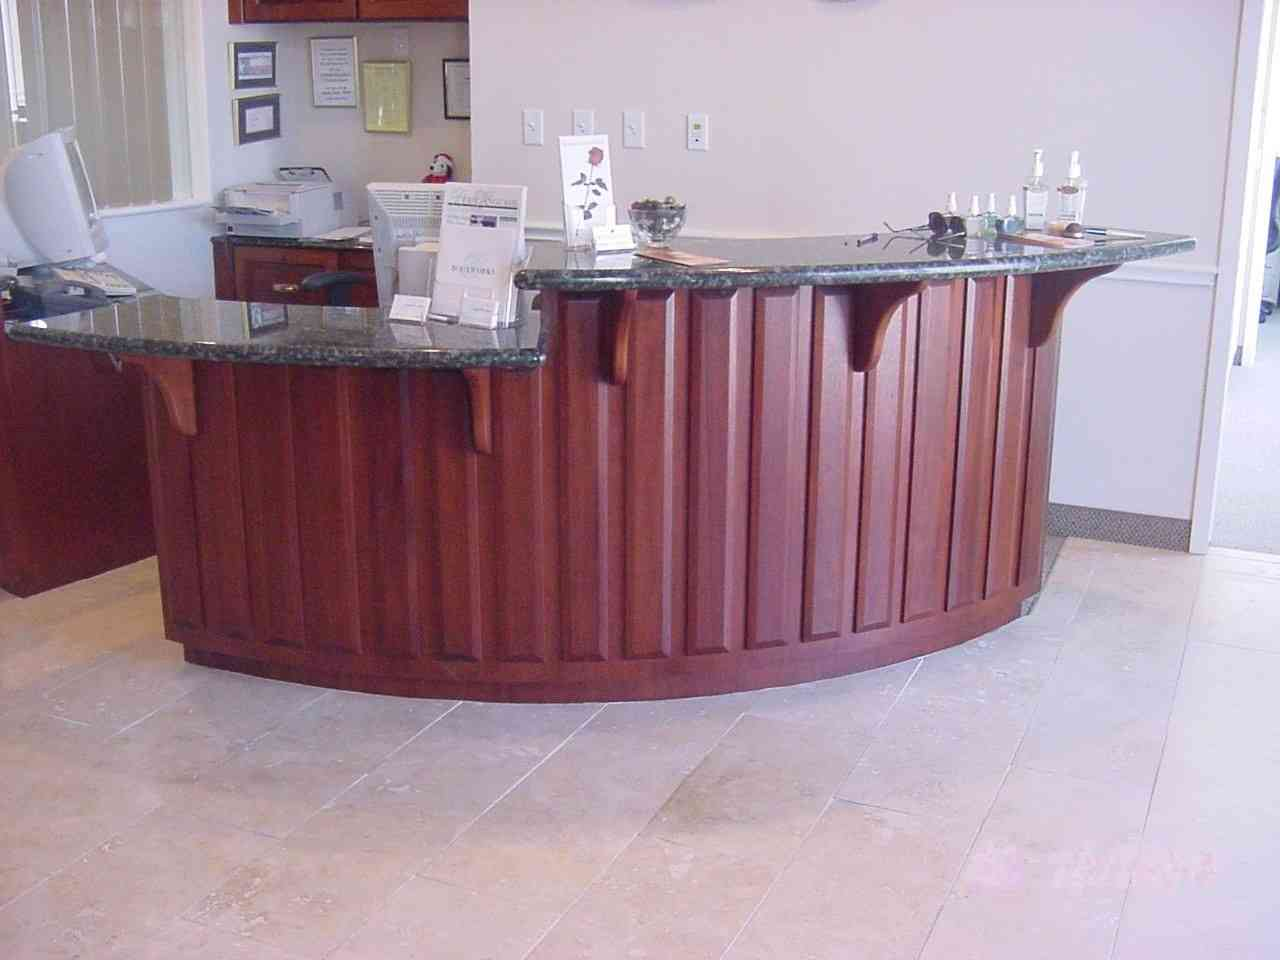 Right reception desk